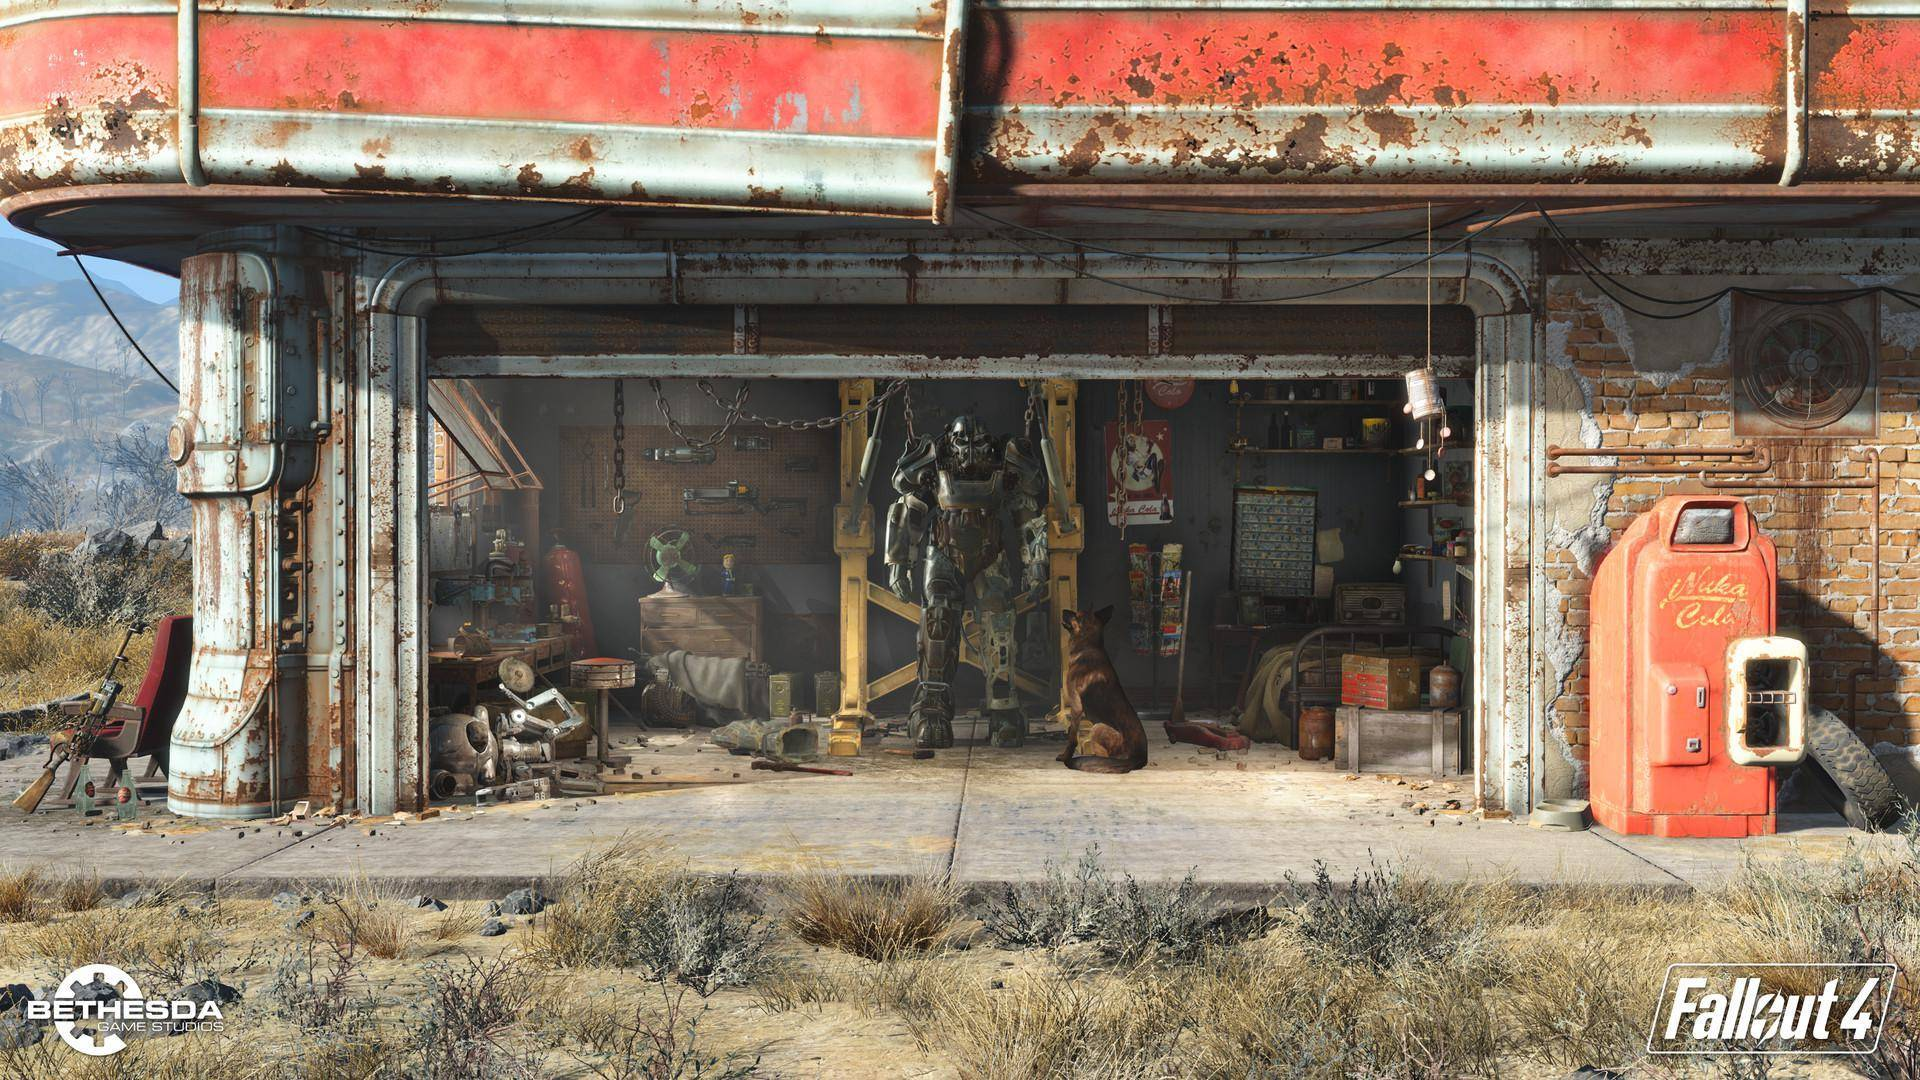 Article title about Fallout 4